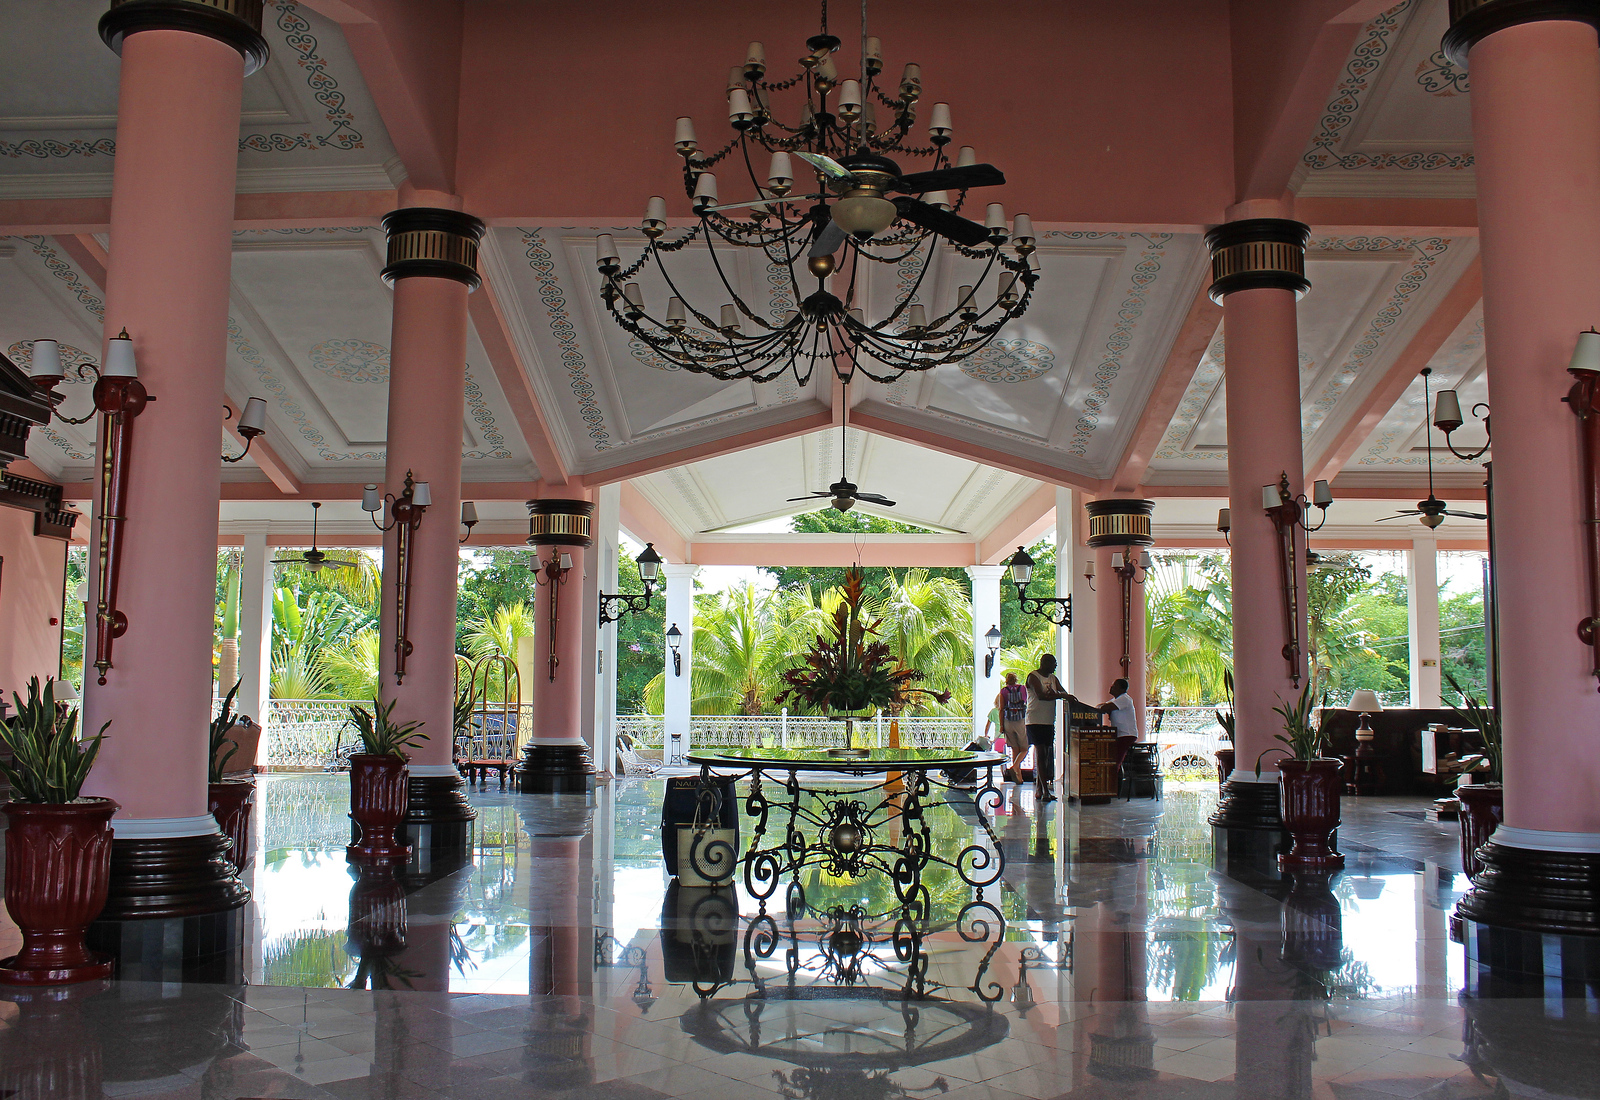 Riu Palace Tropical Bay Negril Jamaica: The front lobby of the hotel